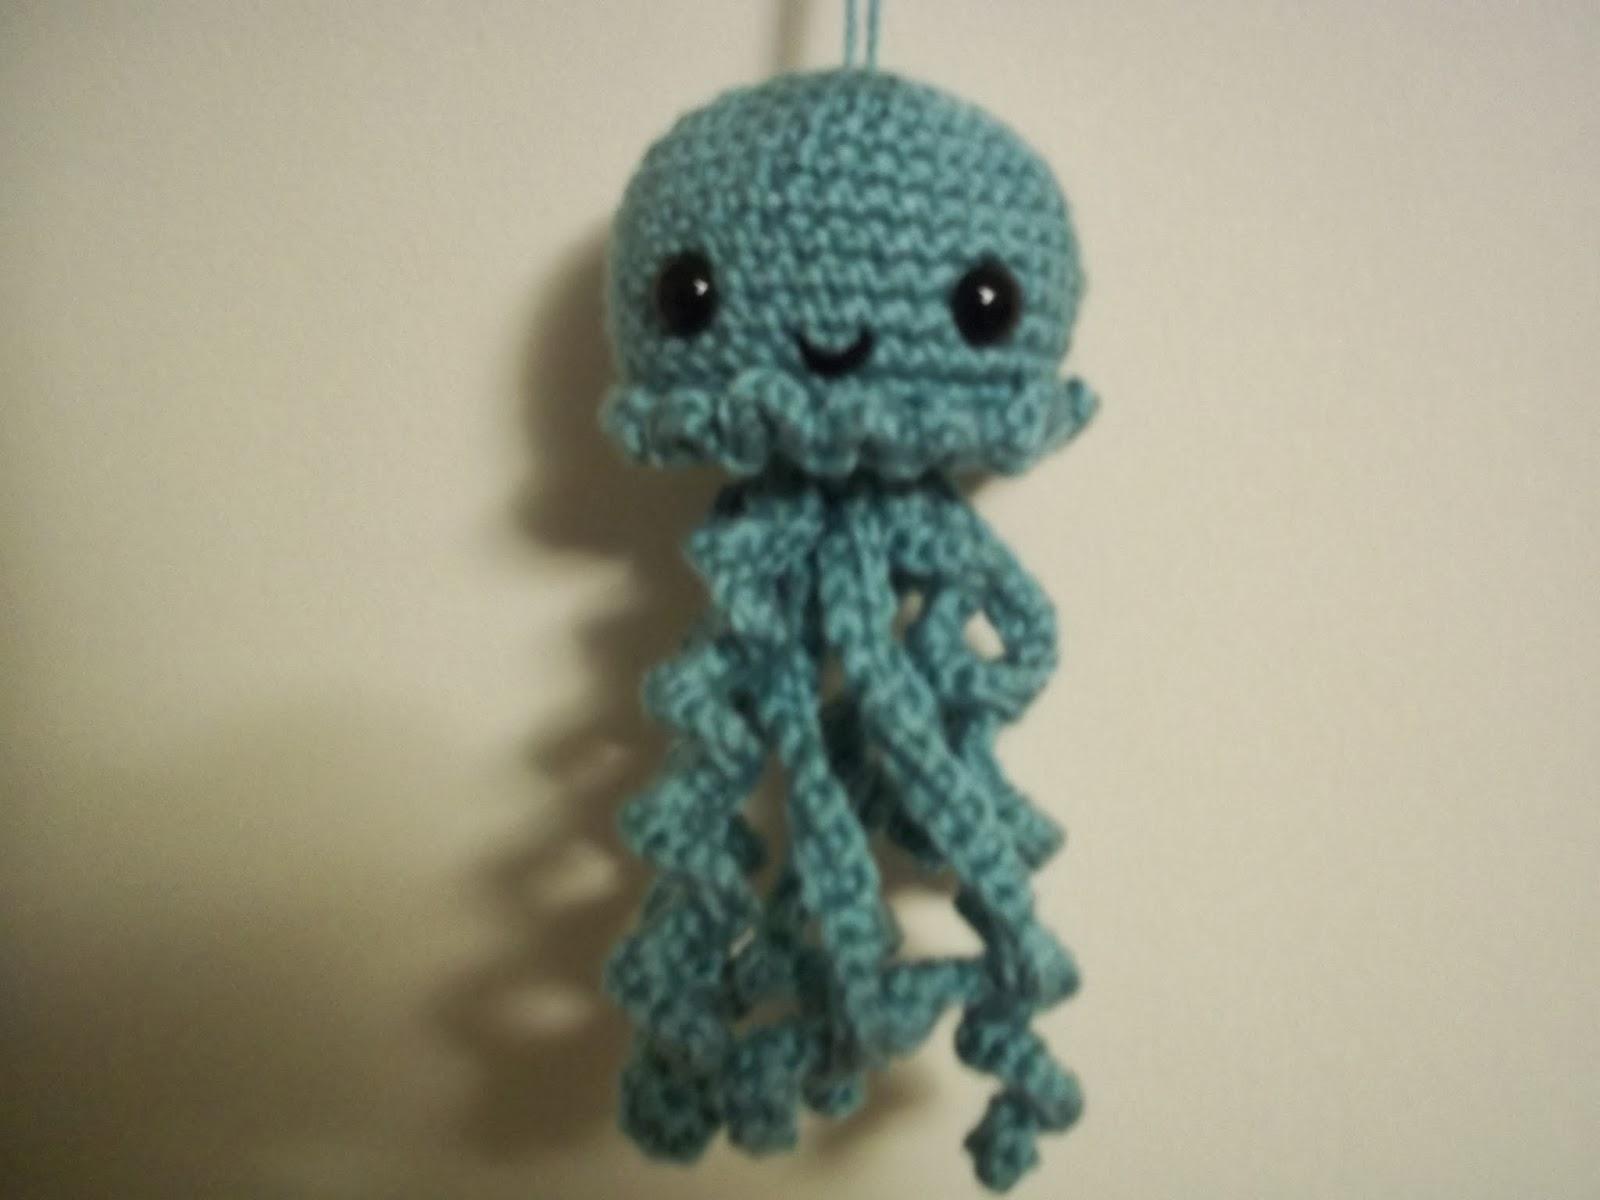 Eden is only a dream away: Cute Crochet Jellyfish Amigurumi Pattern